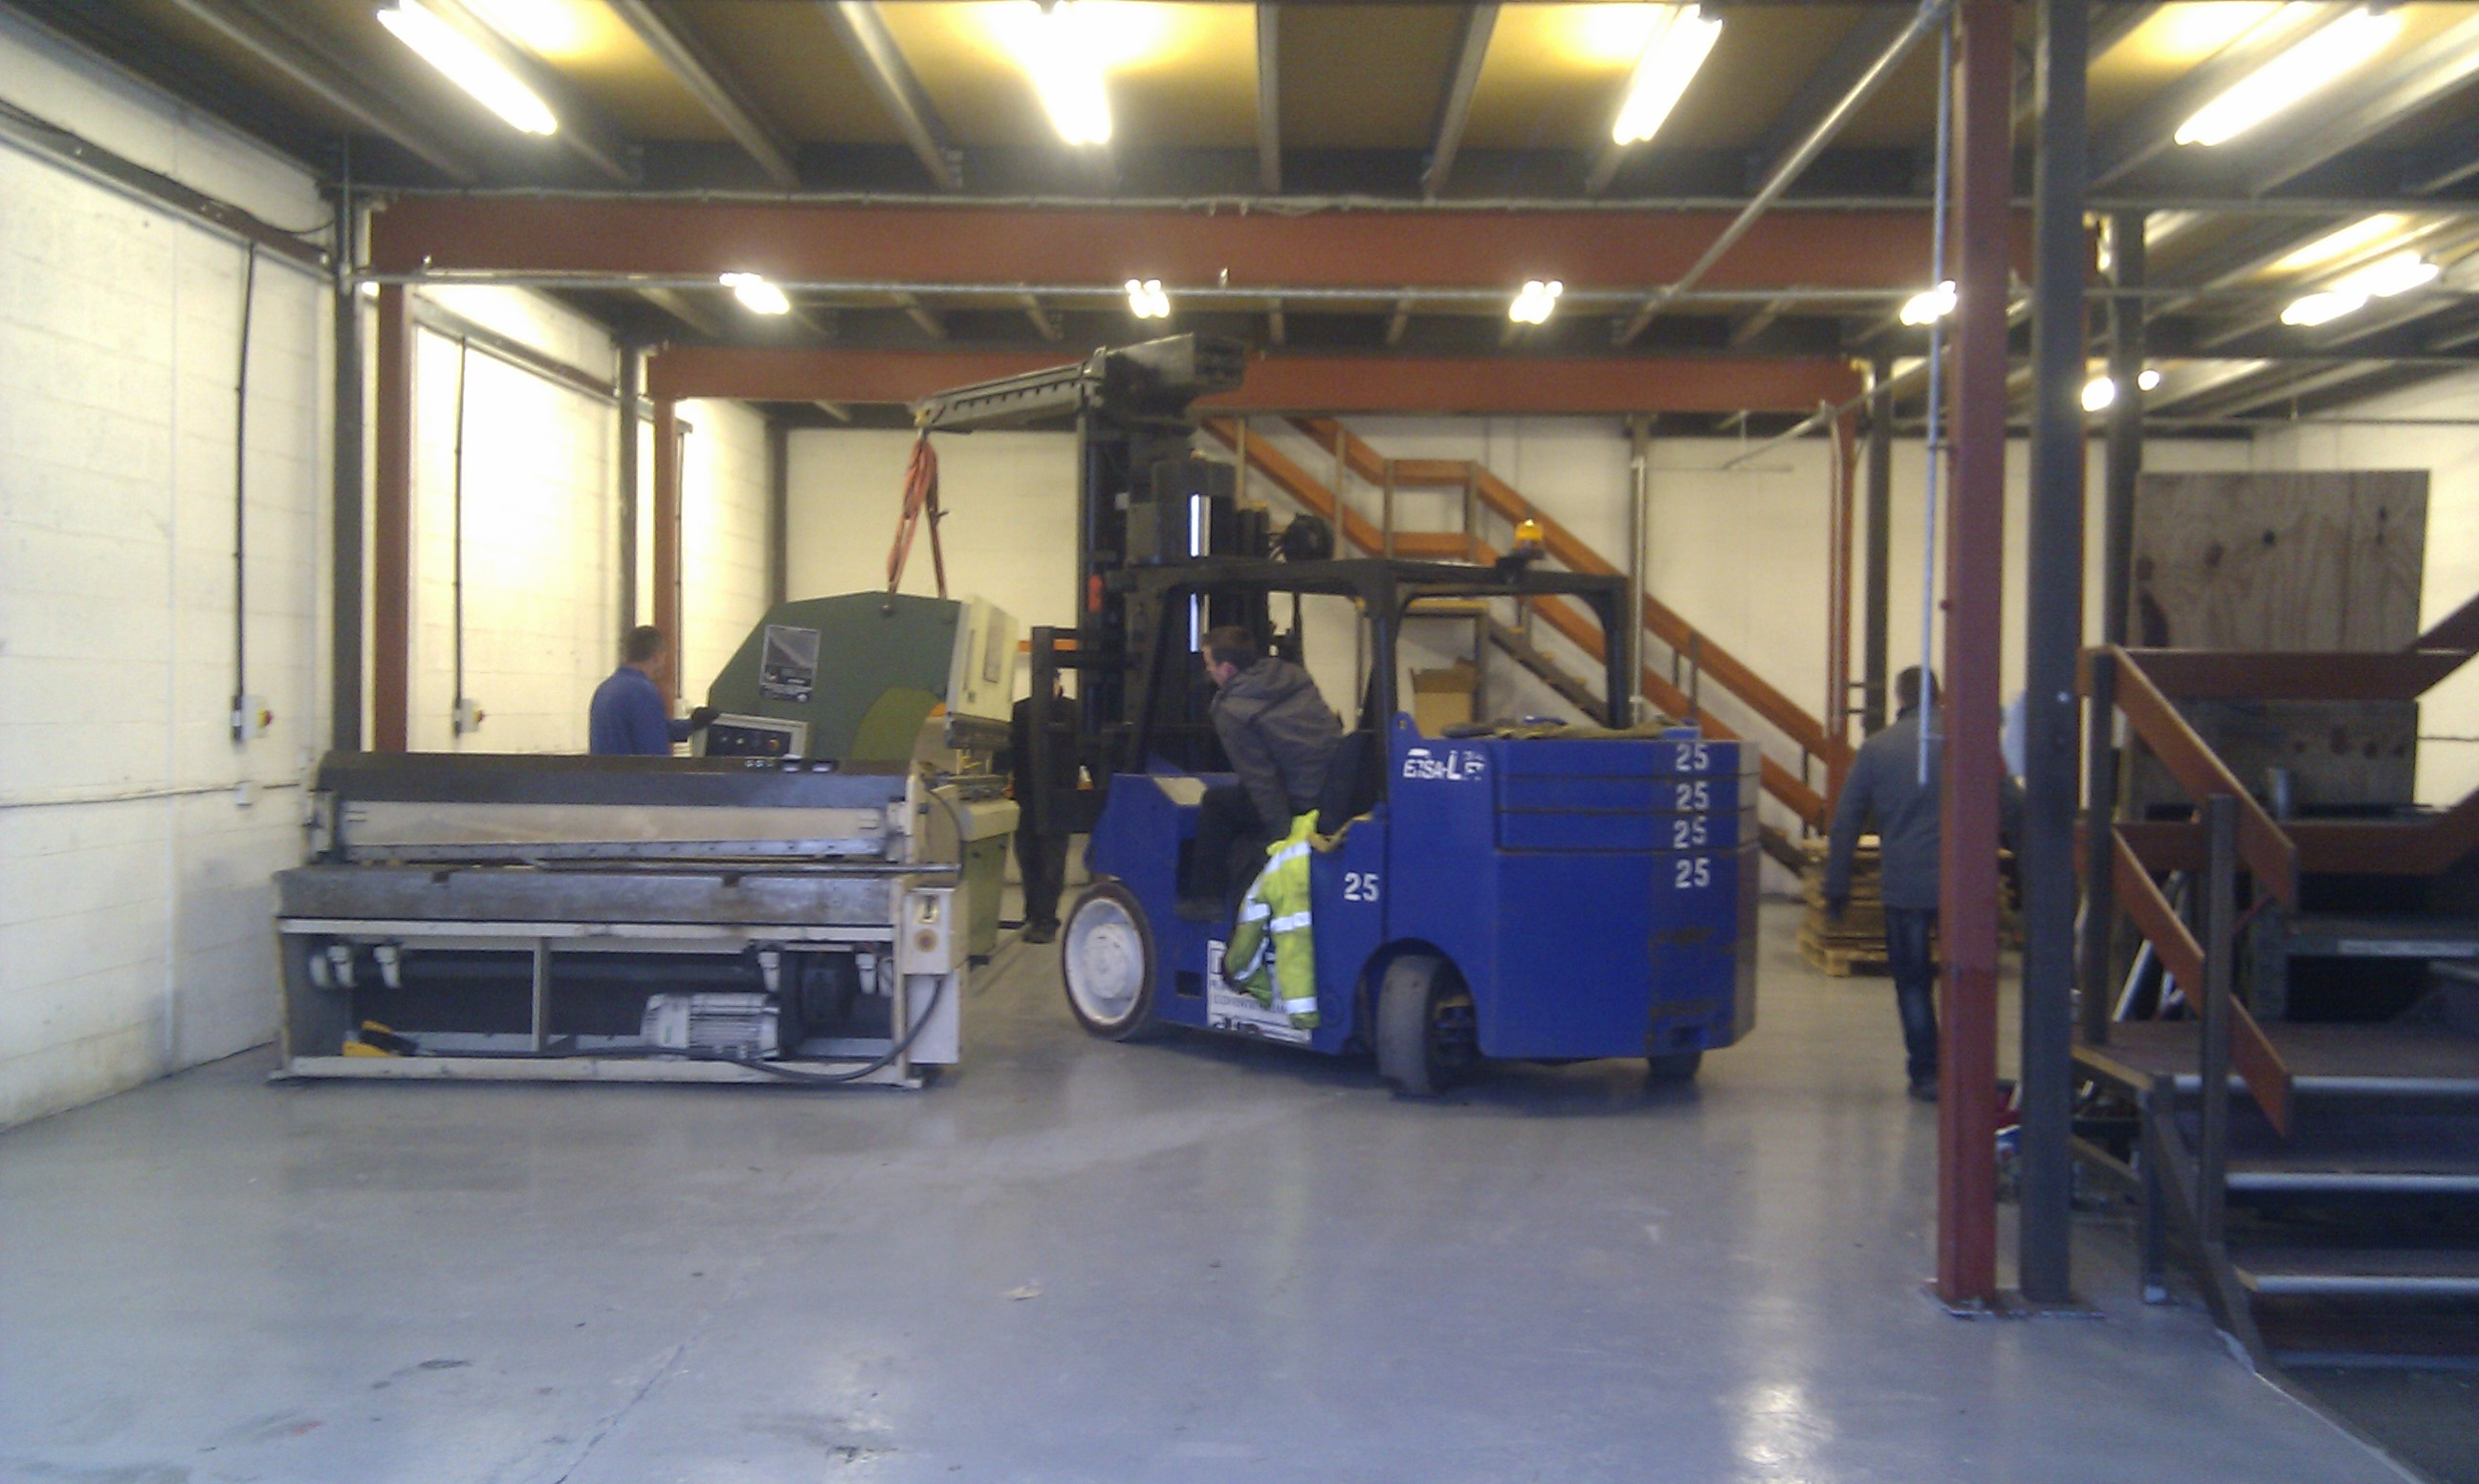 Moving the machinery into the new location.